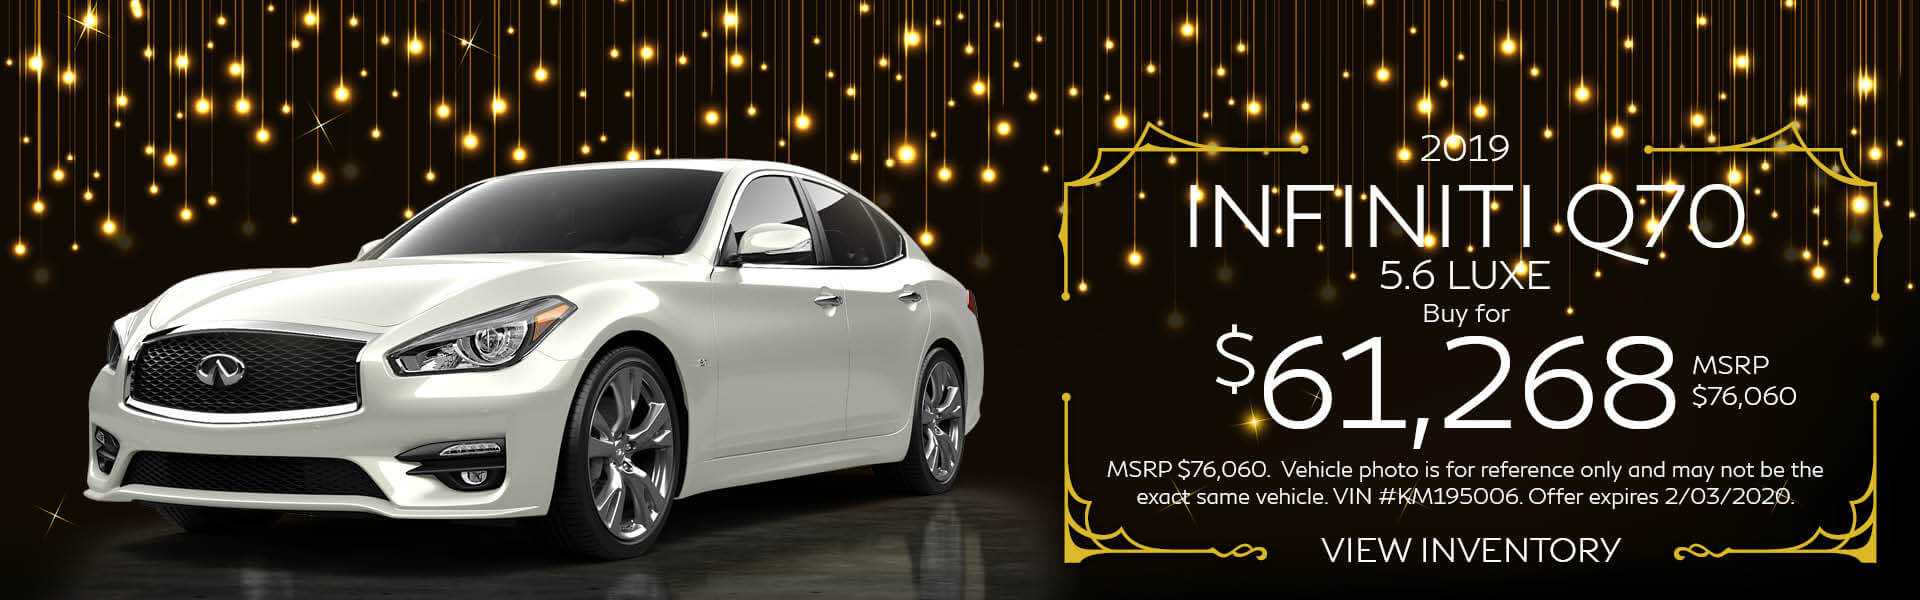 Q70 - Buy for $61,268